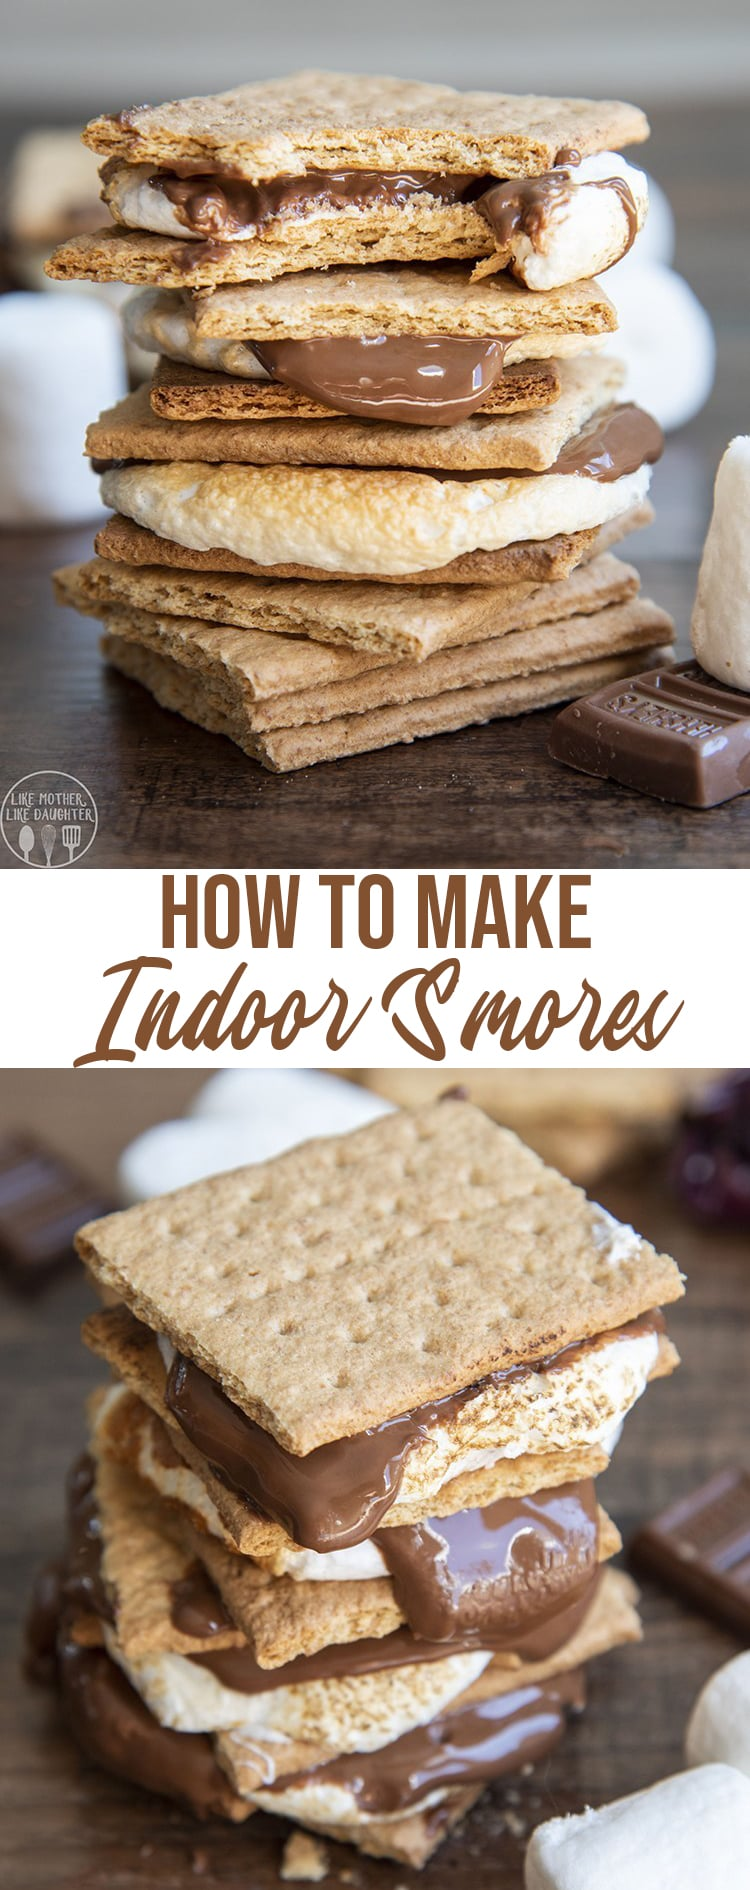 S'mores are a classic treat that you can have rain or shine, in the cold winter, or warm summer. With indoor s'mores you still get that gooey marshmallow, melted chocolate, crunchy graham cracker treat anytime you want it.